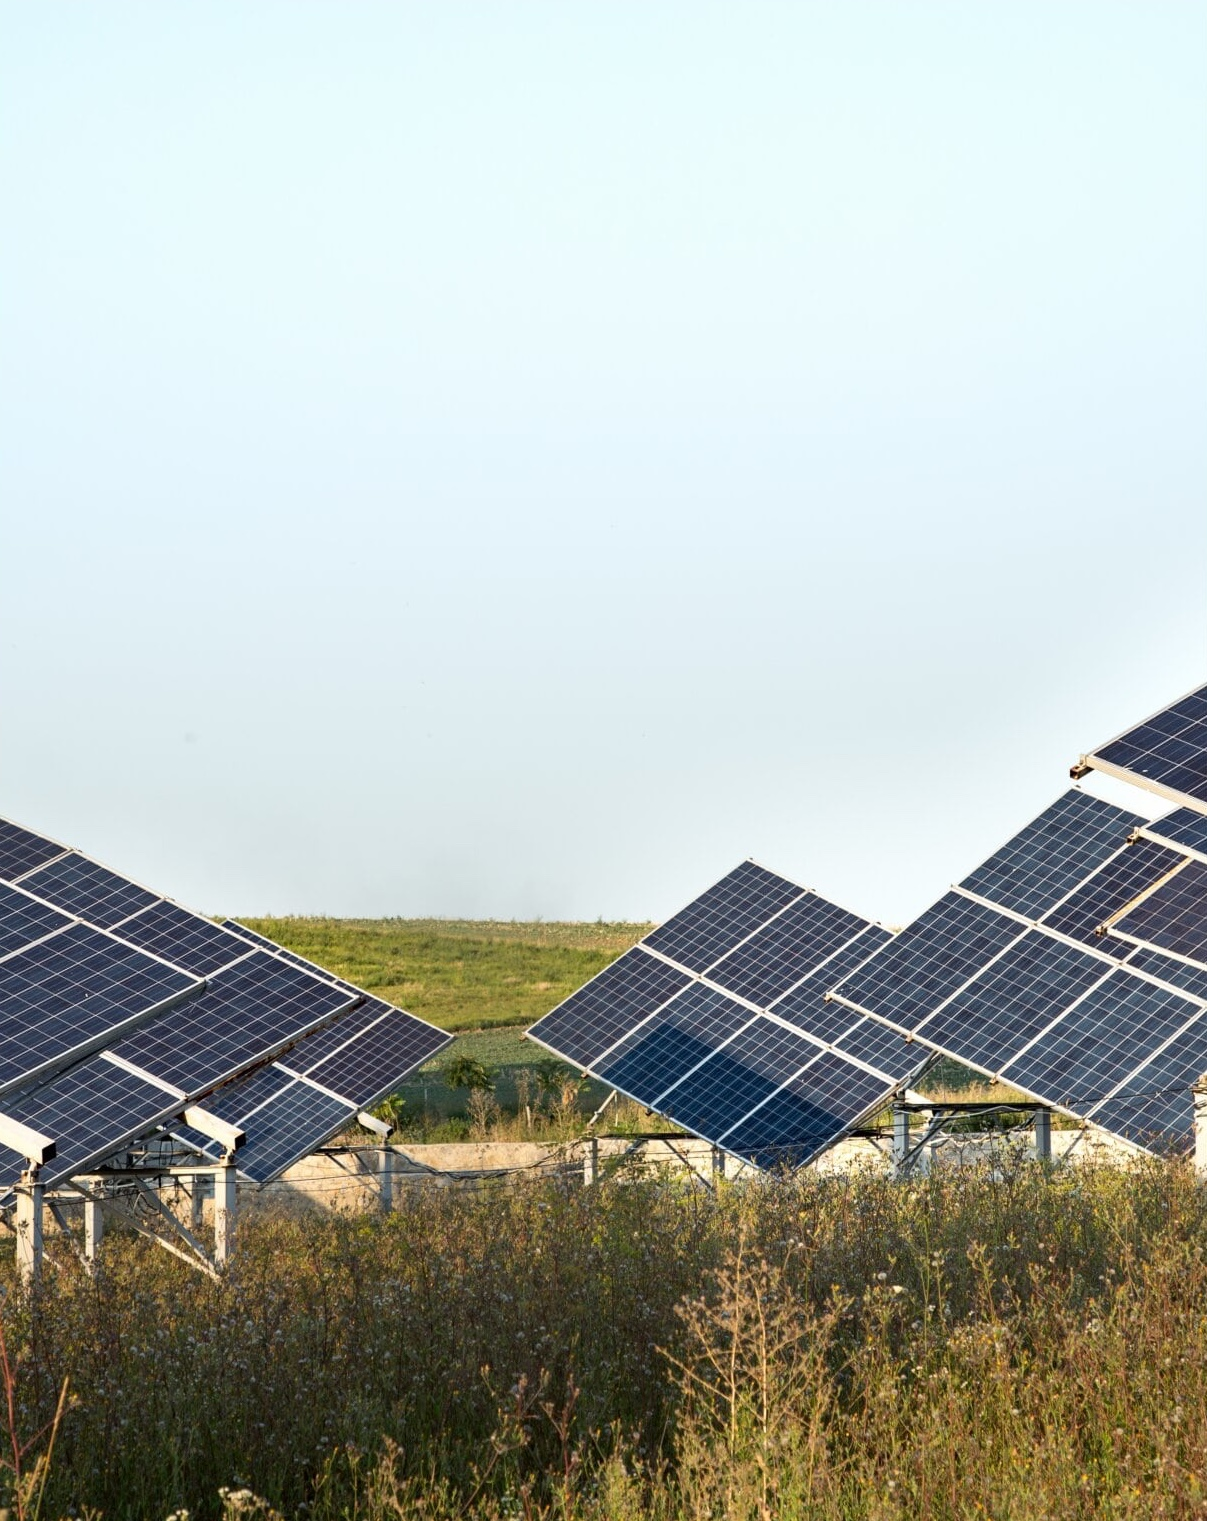 About Solar PV Systems